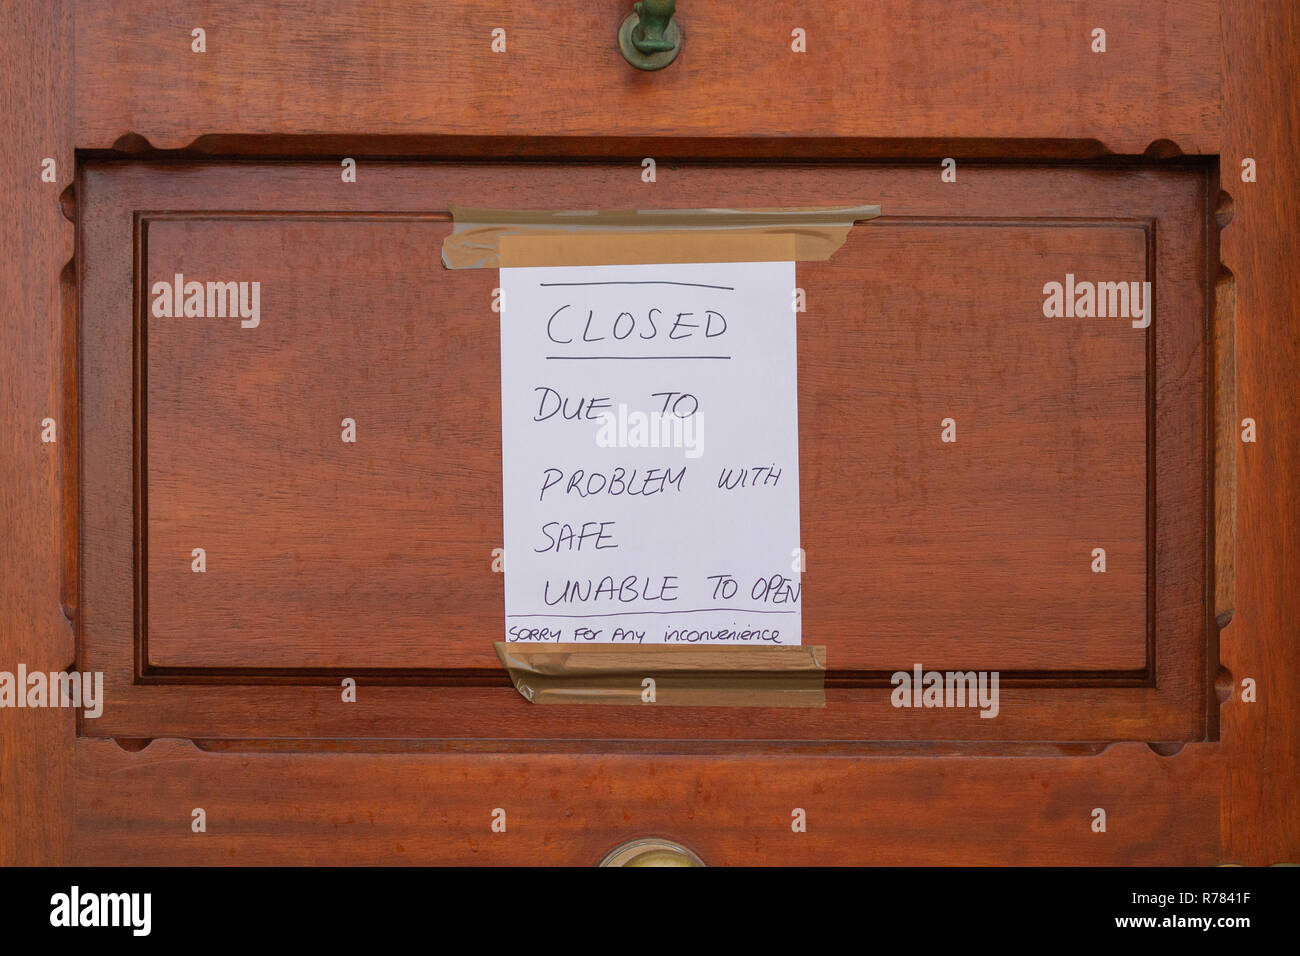 bank-door-with-blue-on-white-closed-sign-due-to-faulty-safe-R7841F.jpg